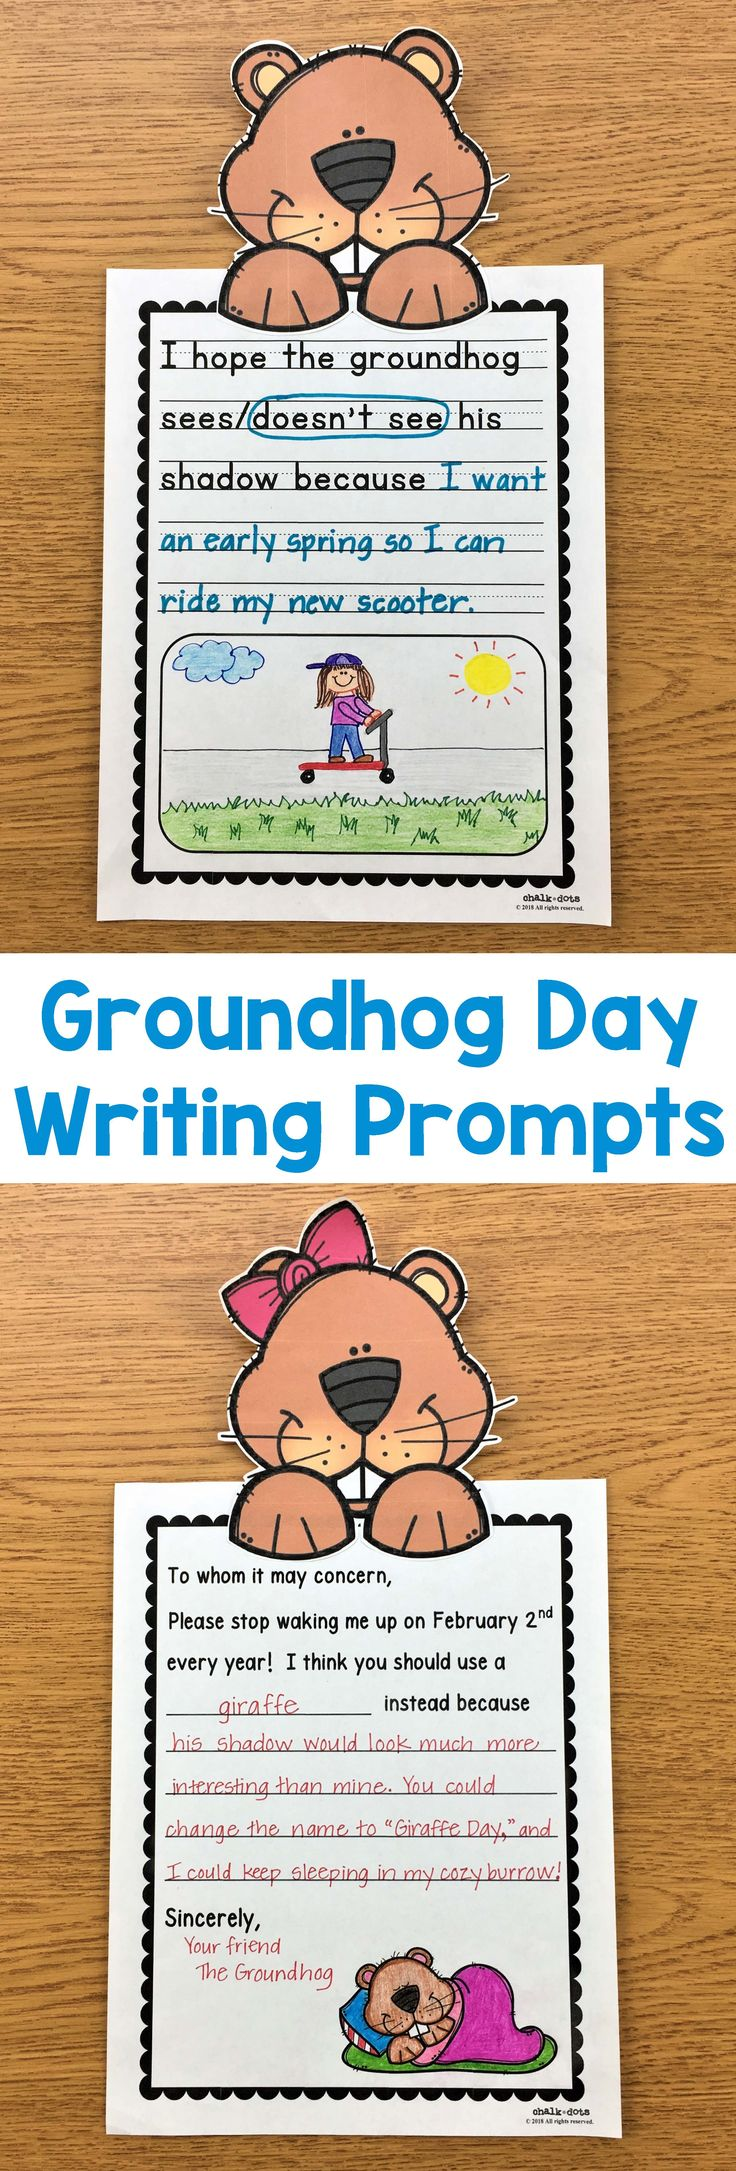 Groundhog Day Writing Prompts -These cute writing prompts are great to use anytime during the week of Groundhog Day. They are perfect to spark your kids' creativity and help them get excited about writing! There are many different fun prompts to choose from so you can select the one(s) that best match the ability level of your class. #GroundhogDay